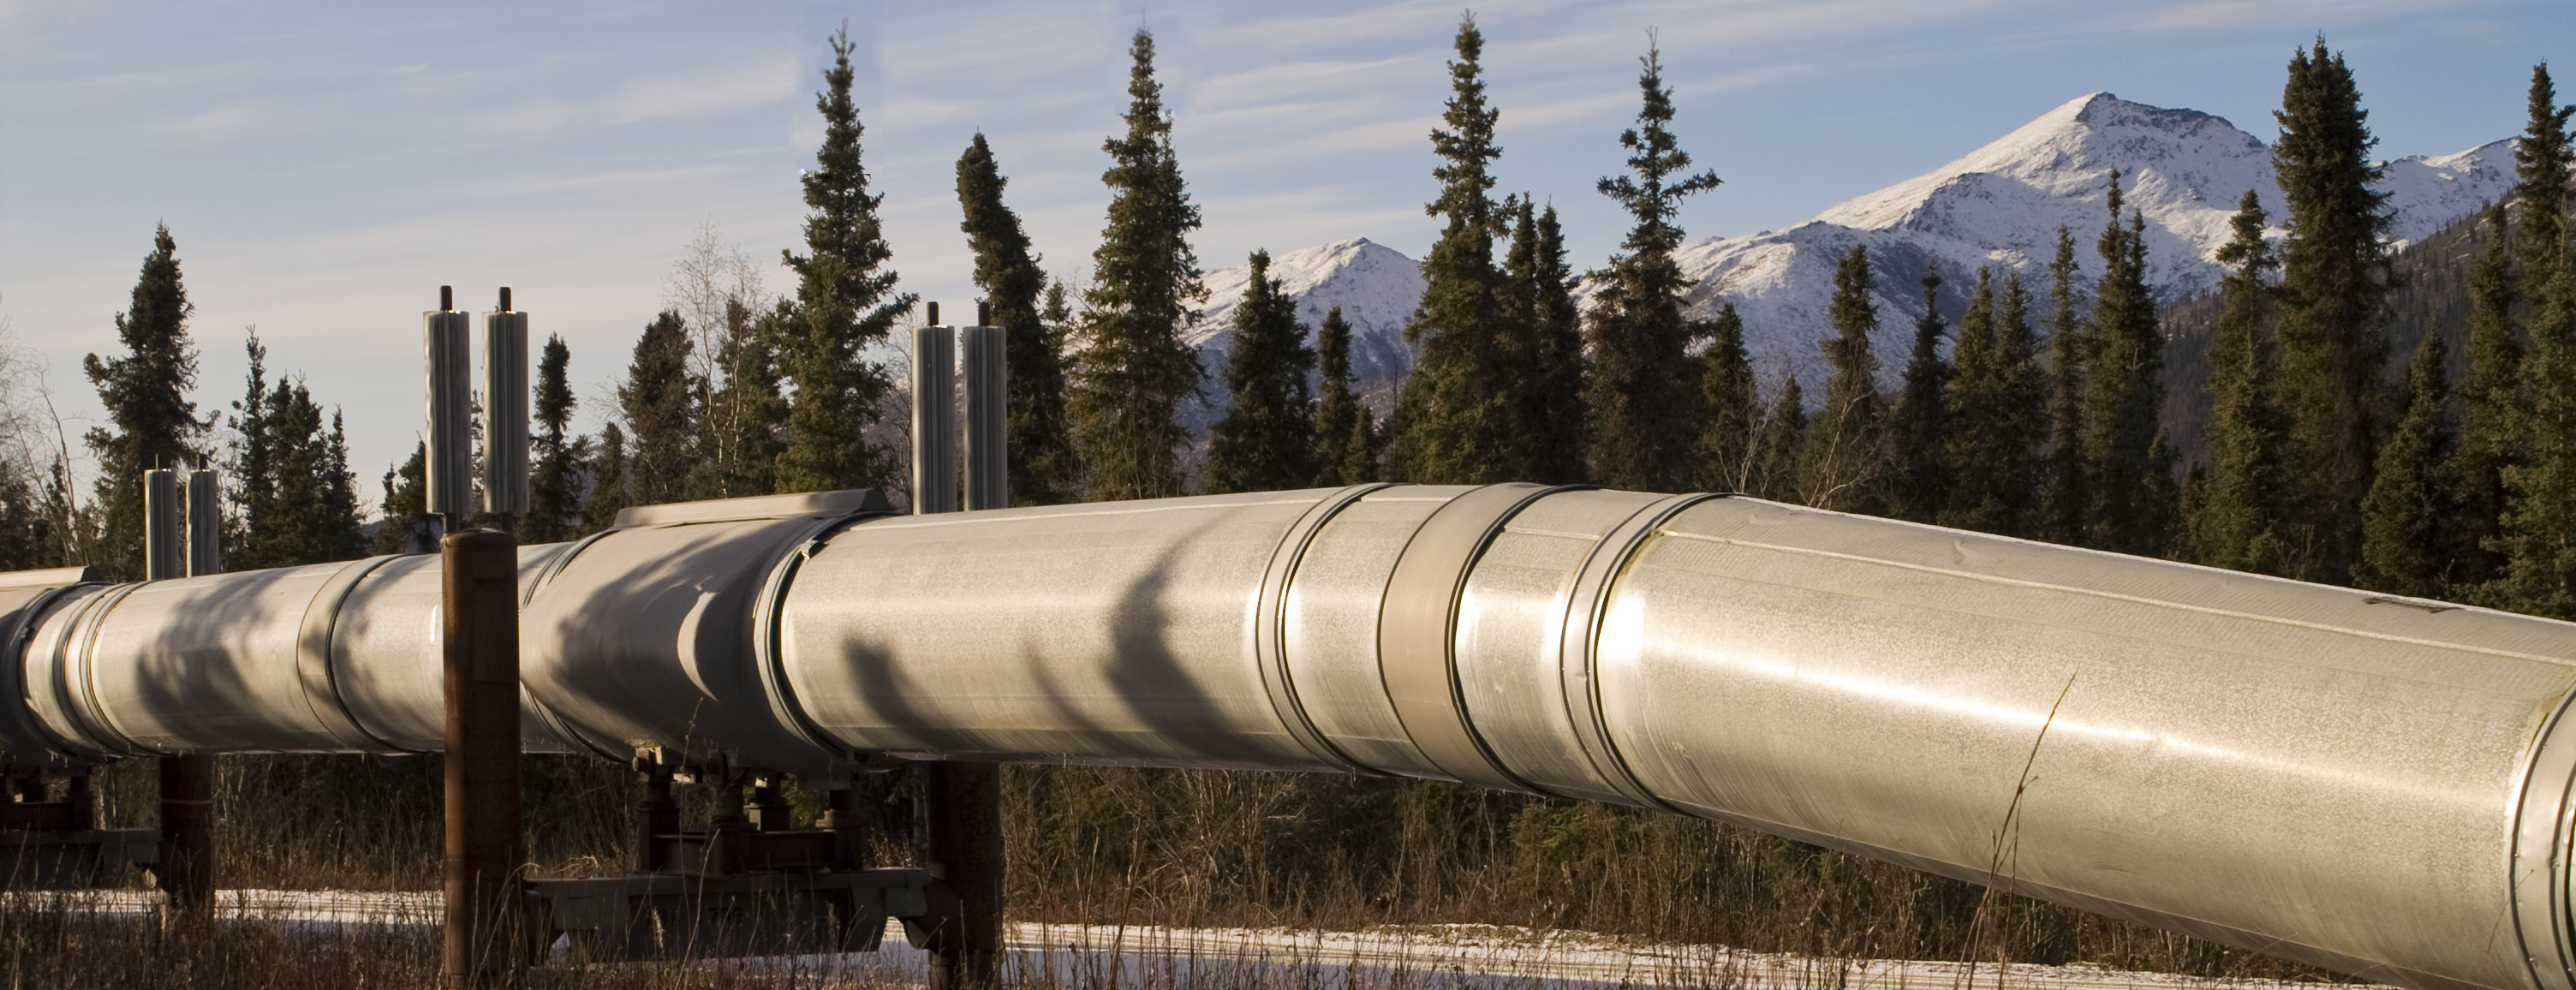 Indelac actuators on oil and gas pipeline